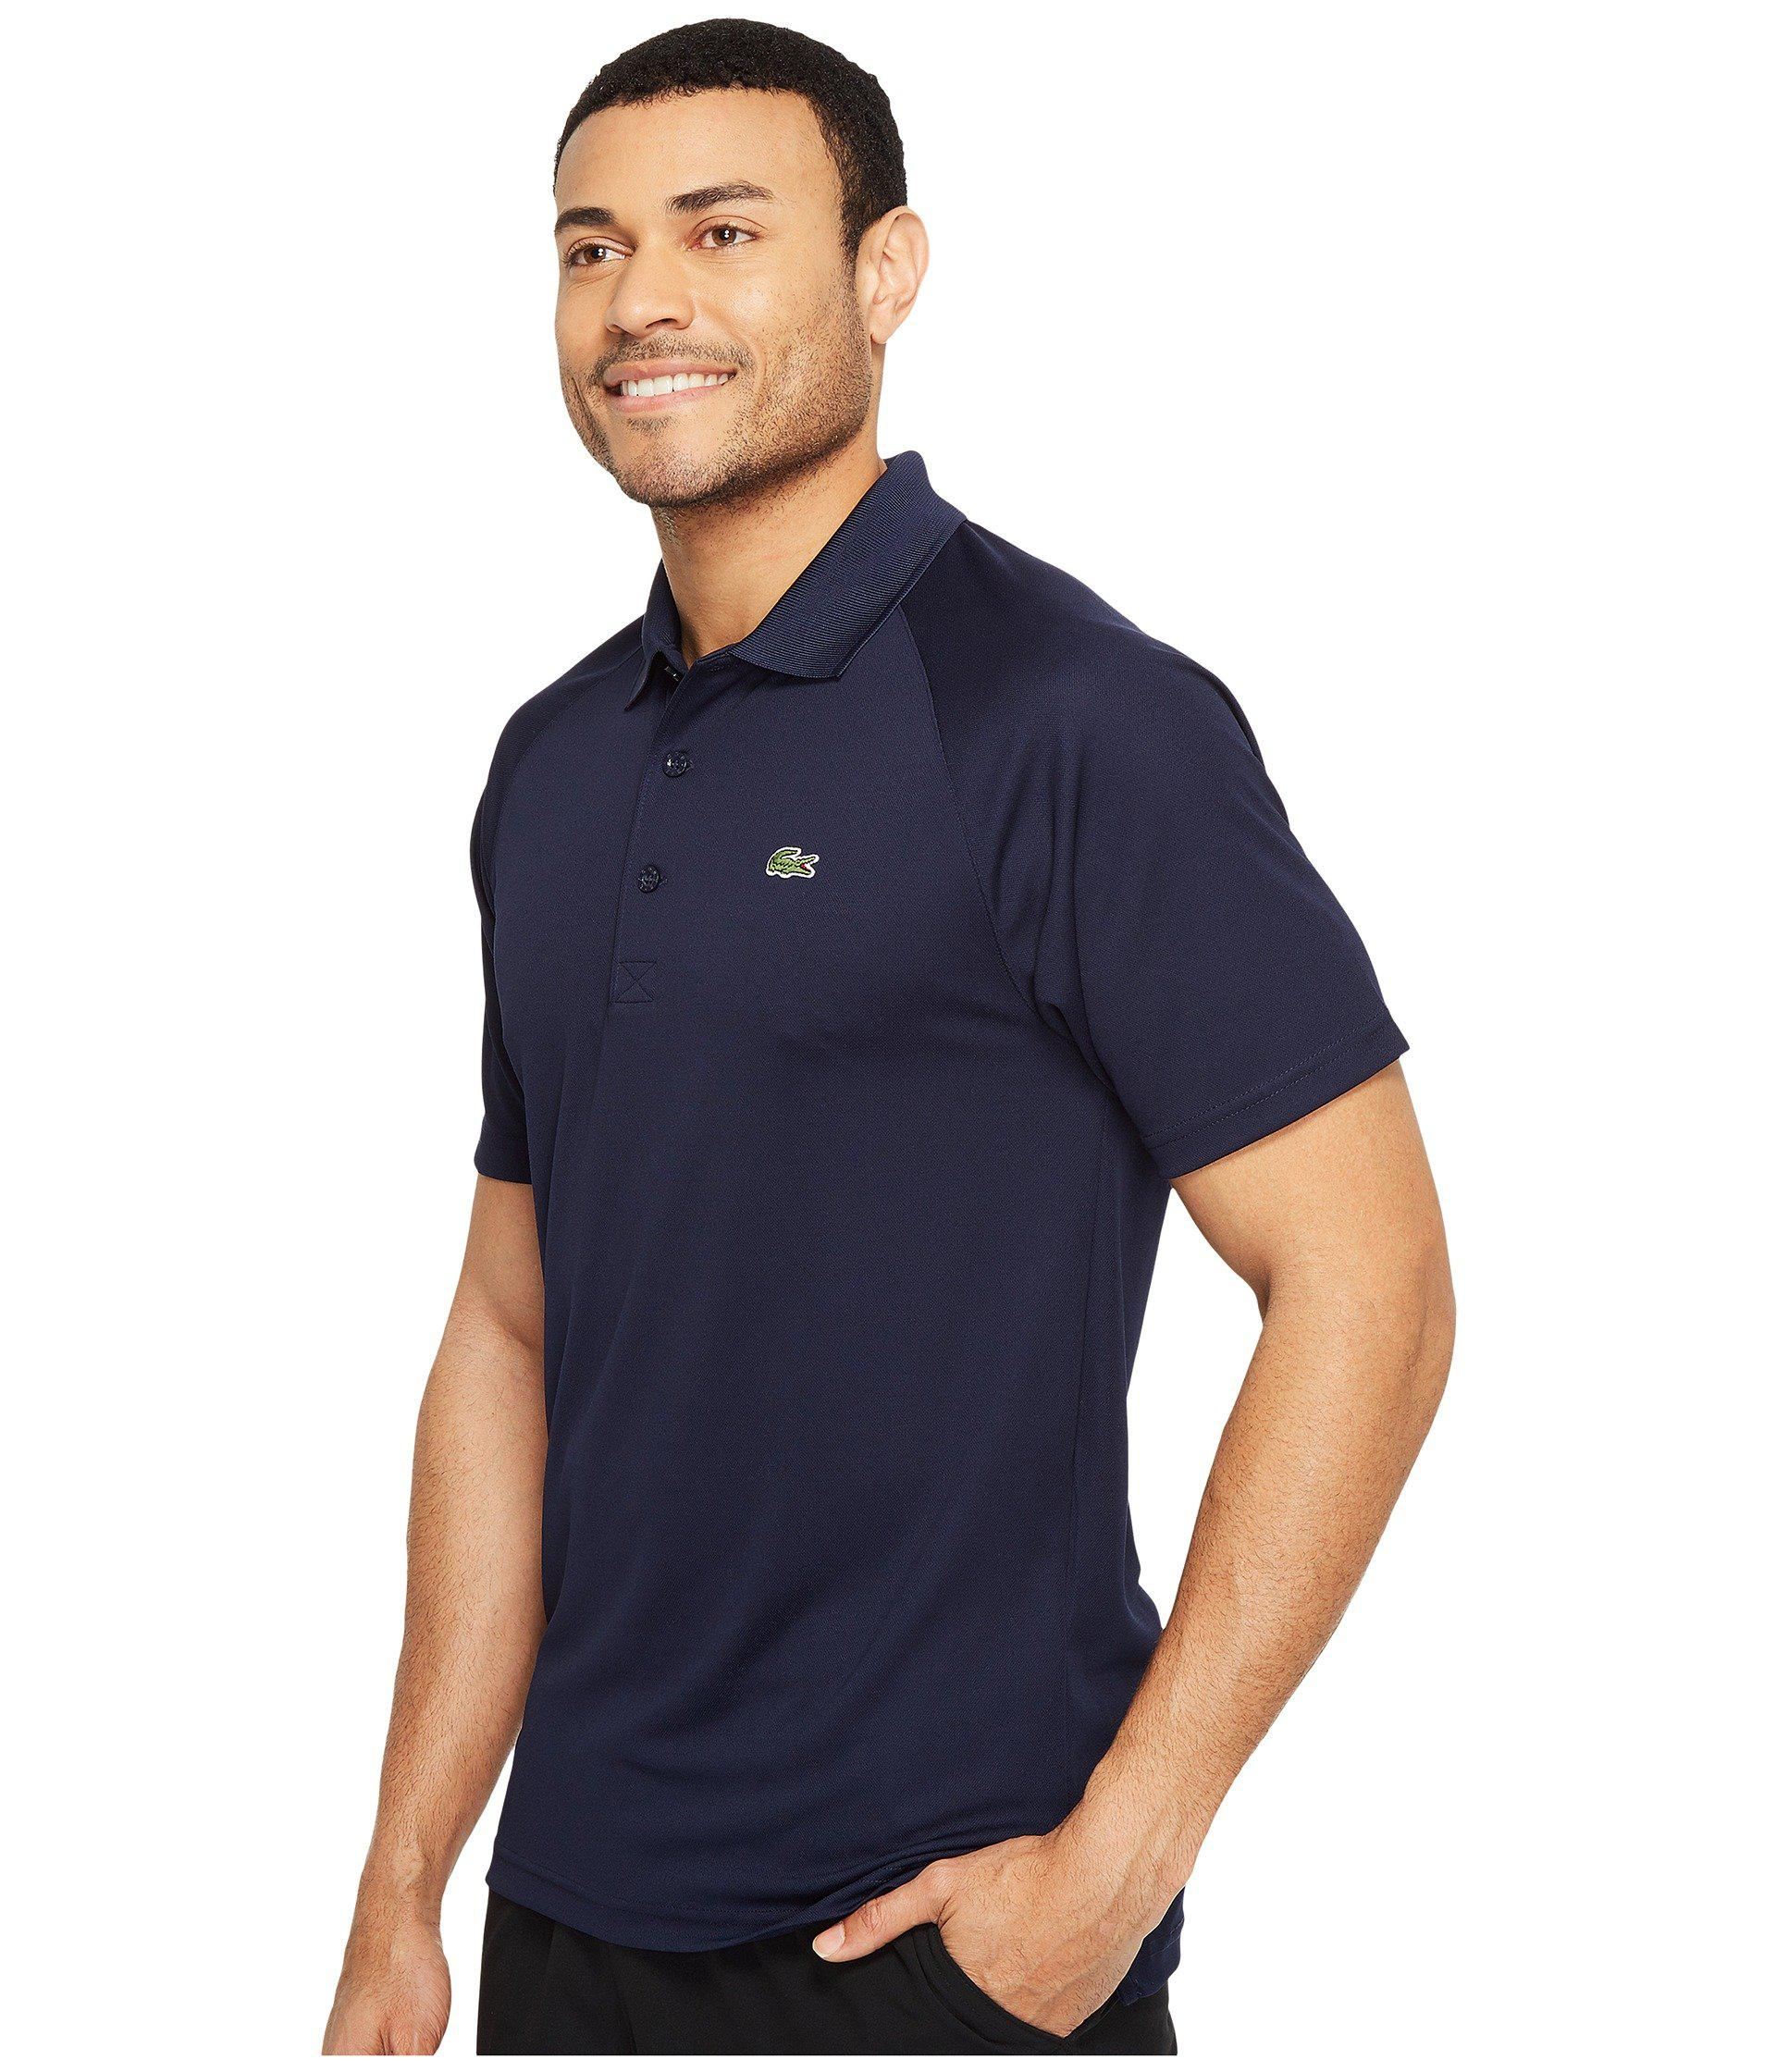 caab4b481860 Lyst - Lacoste Slim Fit Pique Polo In Navy in Blue for Men